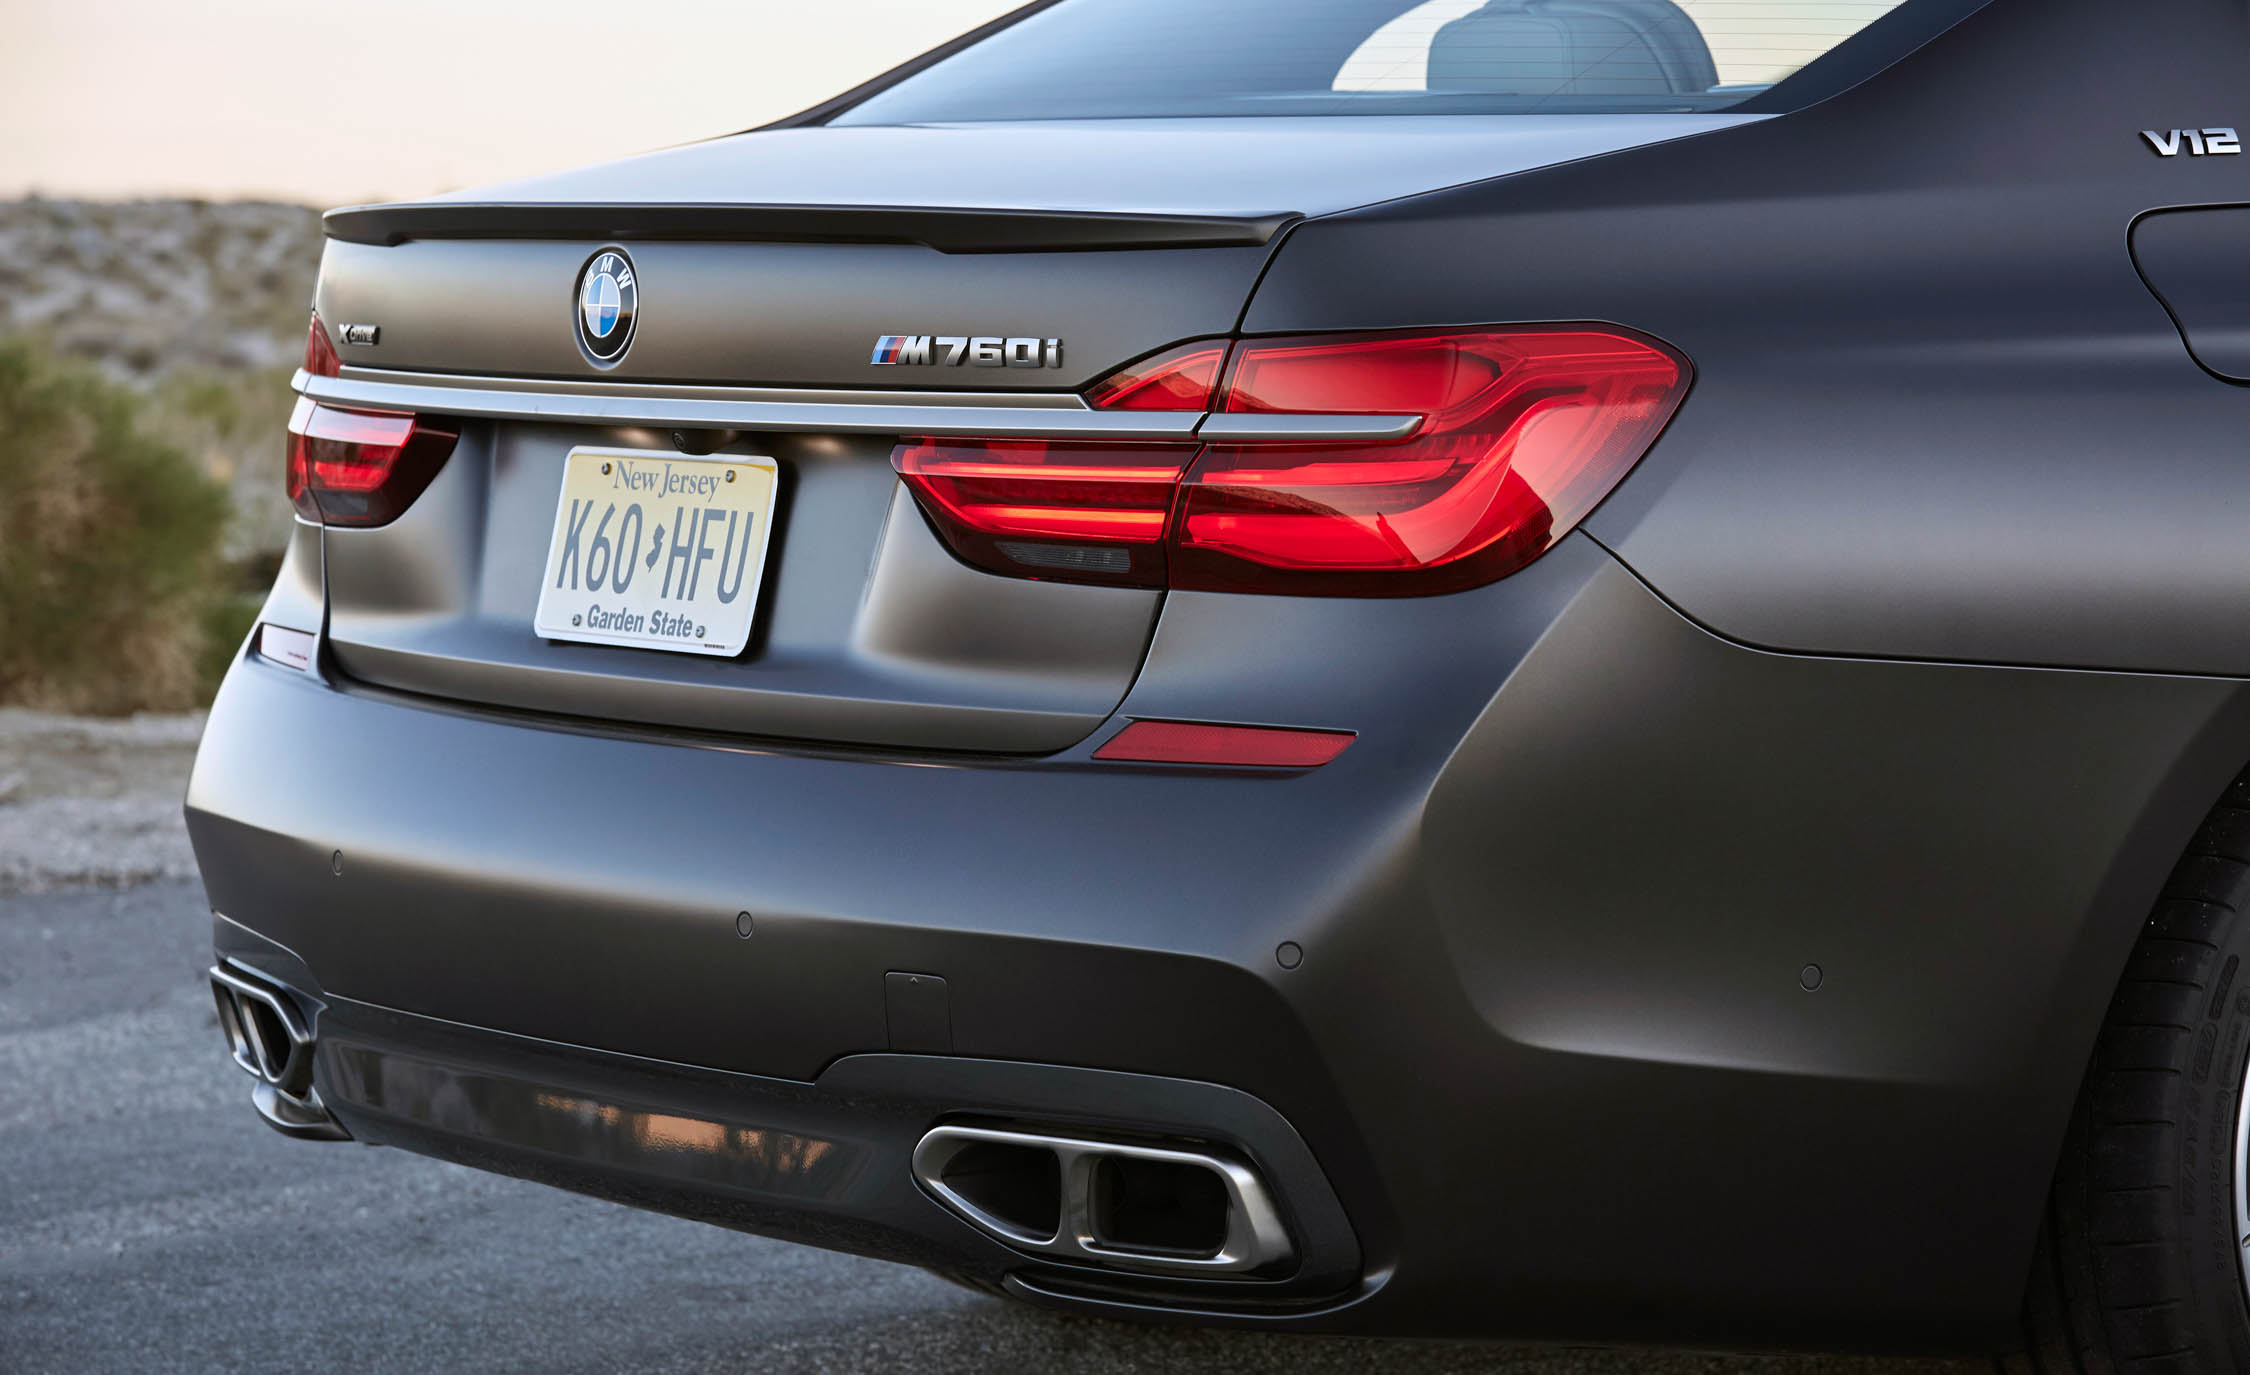 2017 BMW M760i XDrive Exterior View Rear Bumper (Photo 20 of 76)